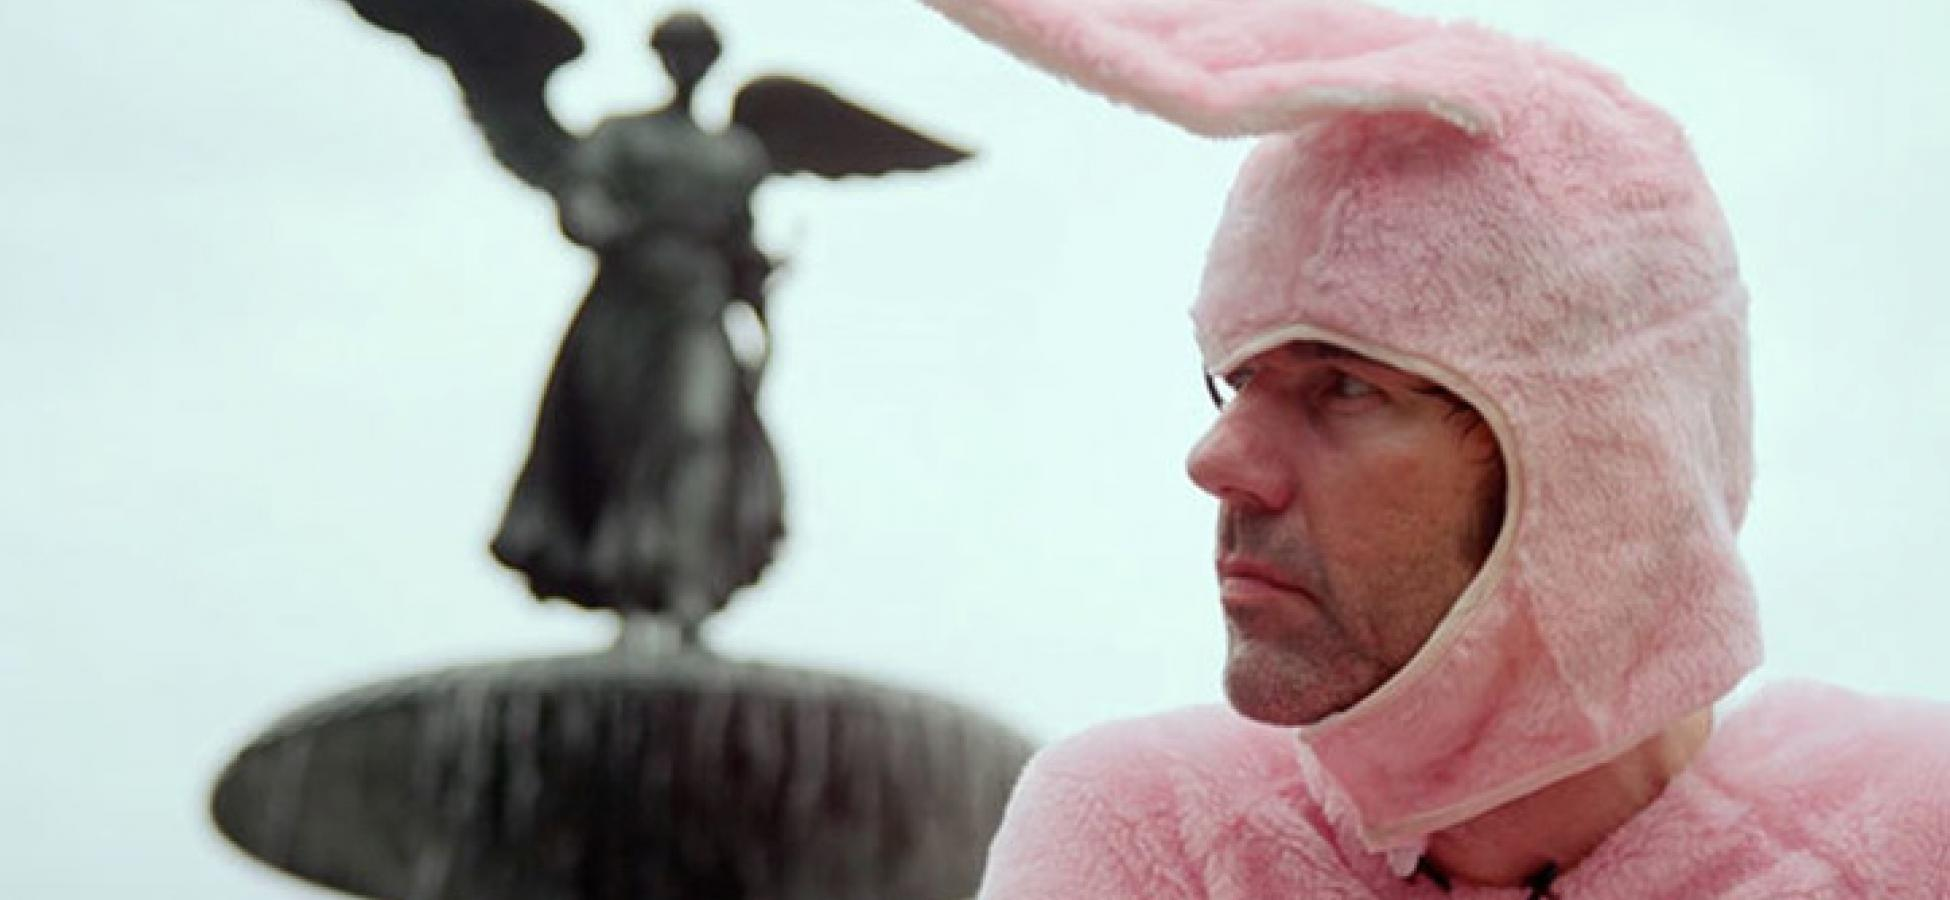 Stefan Sagmeister's THE HAPPY FILM